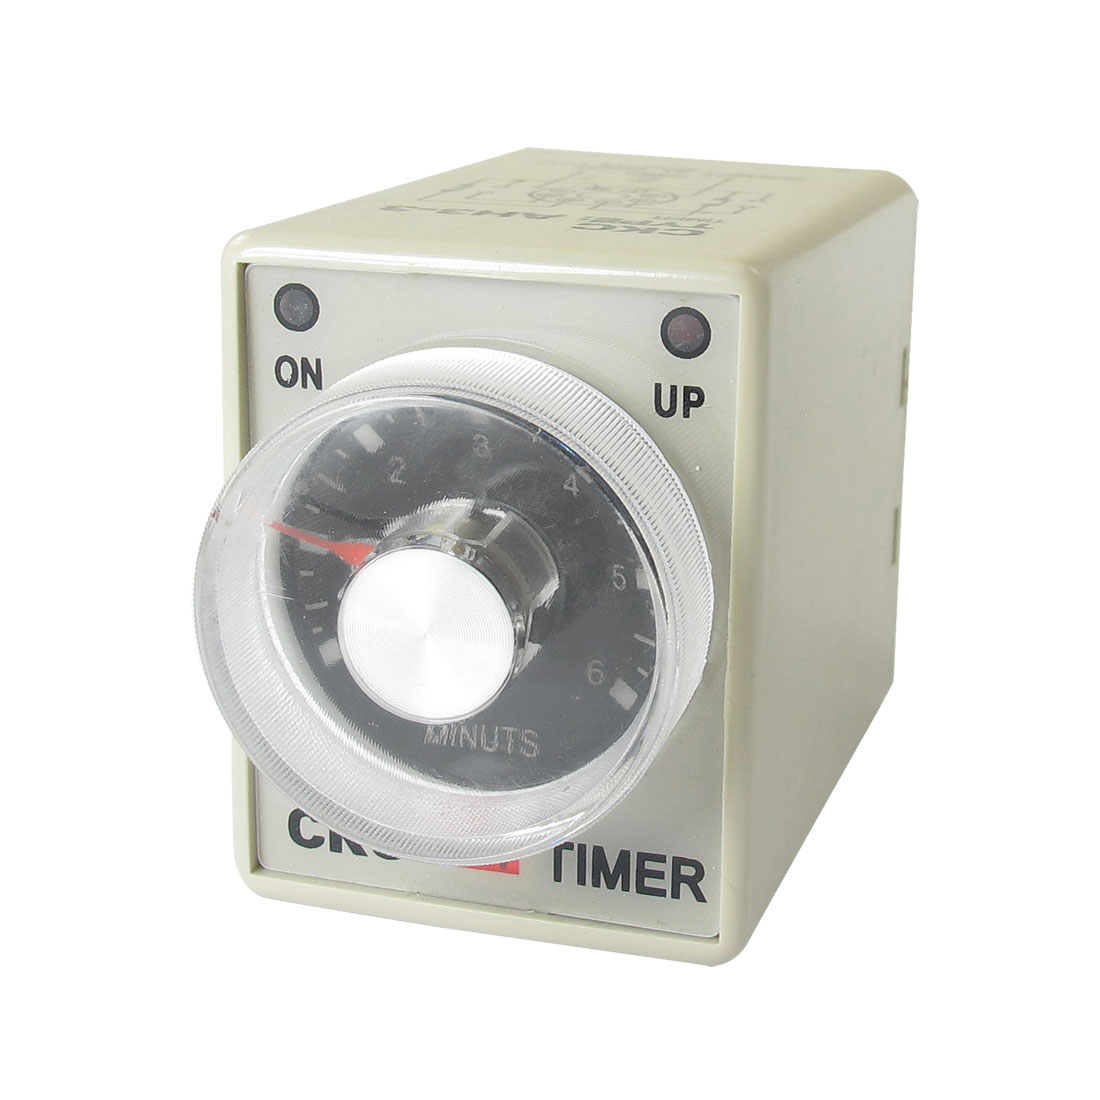 DC 12V 0-6 Minutes 6m Plastic Housing Delay Timer Time Relay 8 Pin AH3-3